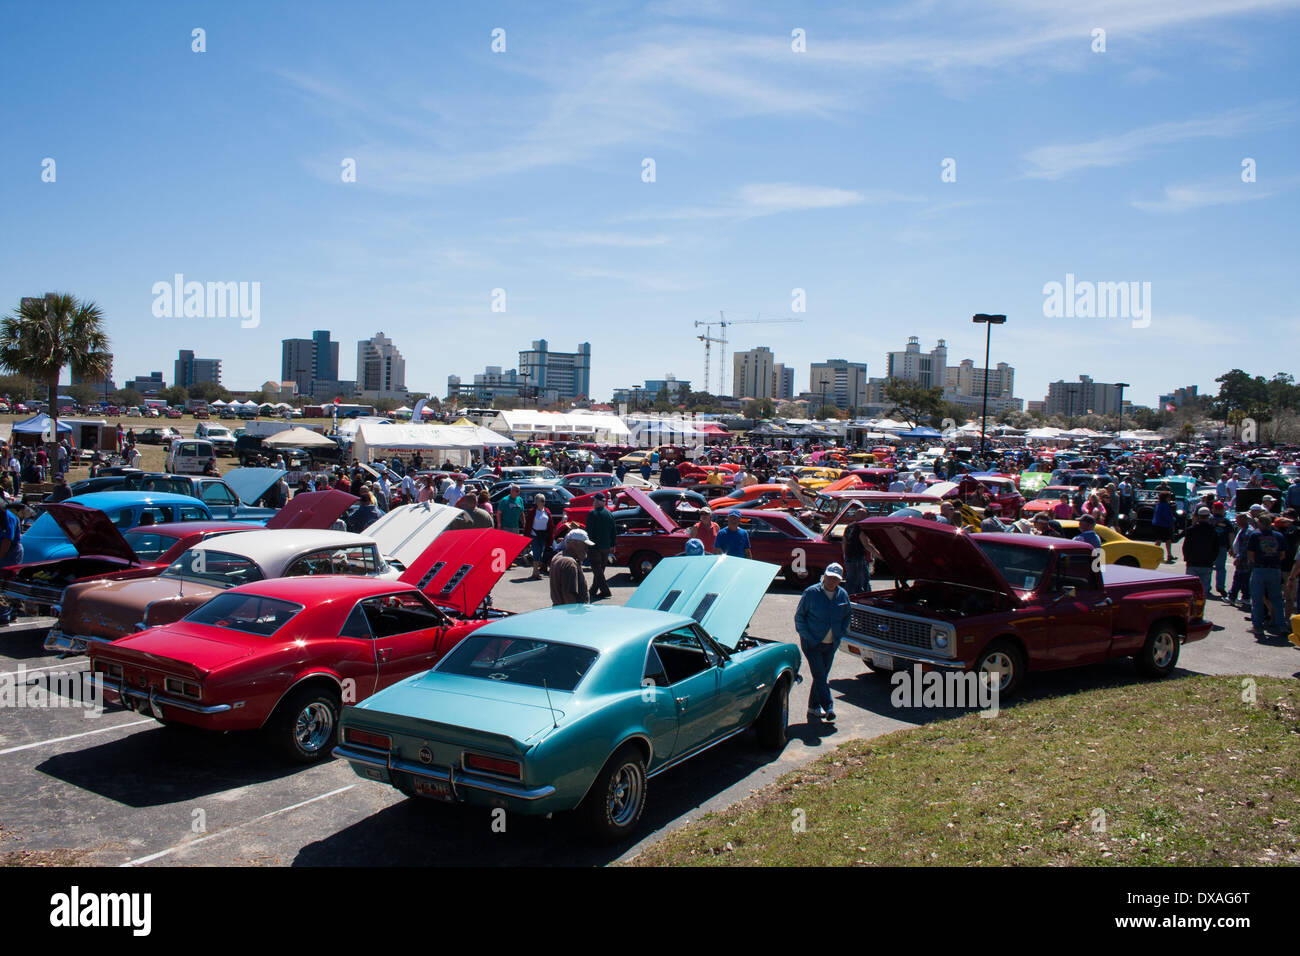 Myrtle Beach, South Carolina, USA. 21st March 2014. 26th Annual Run ...